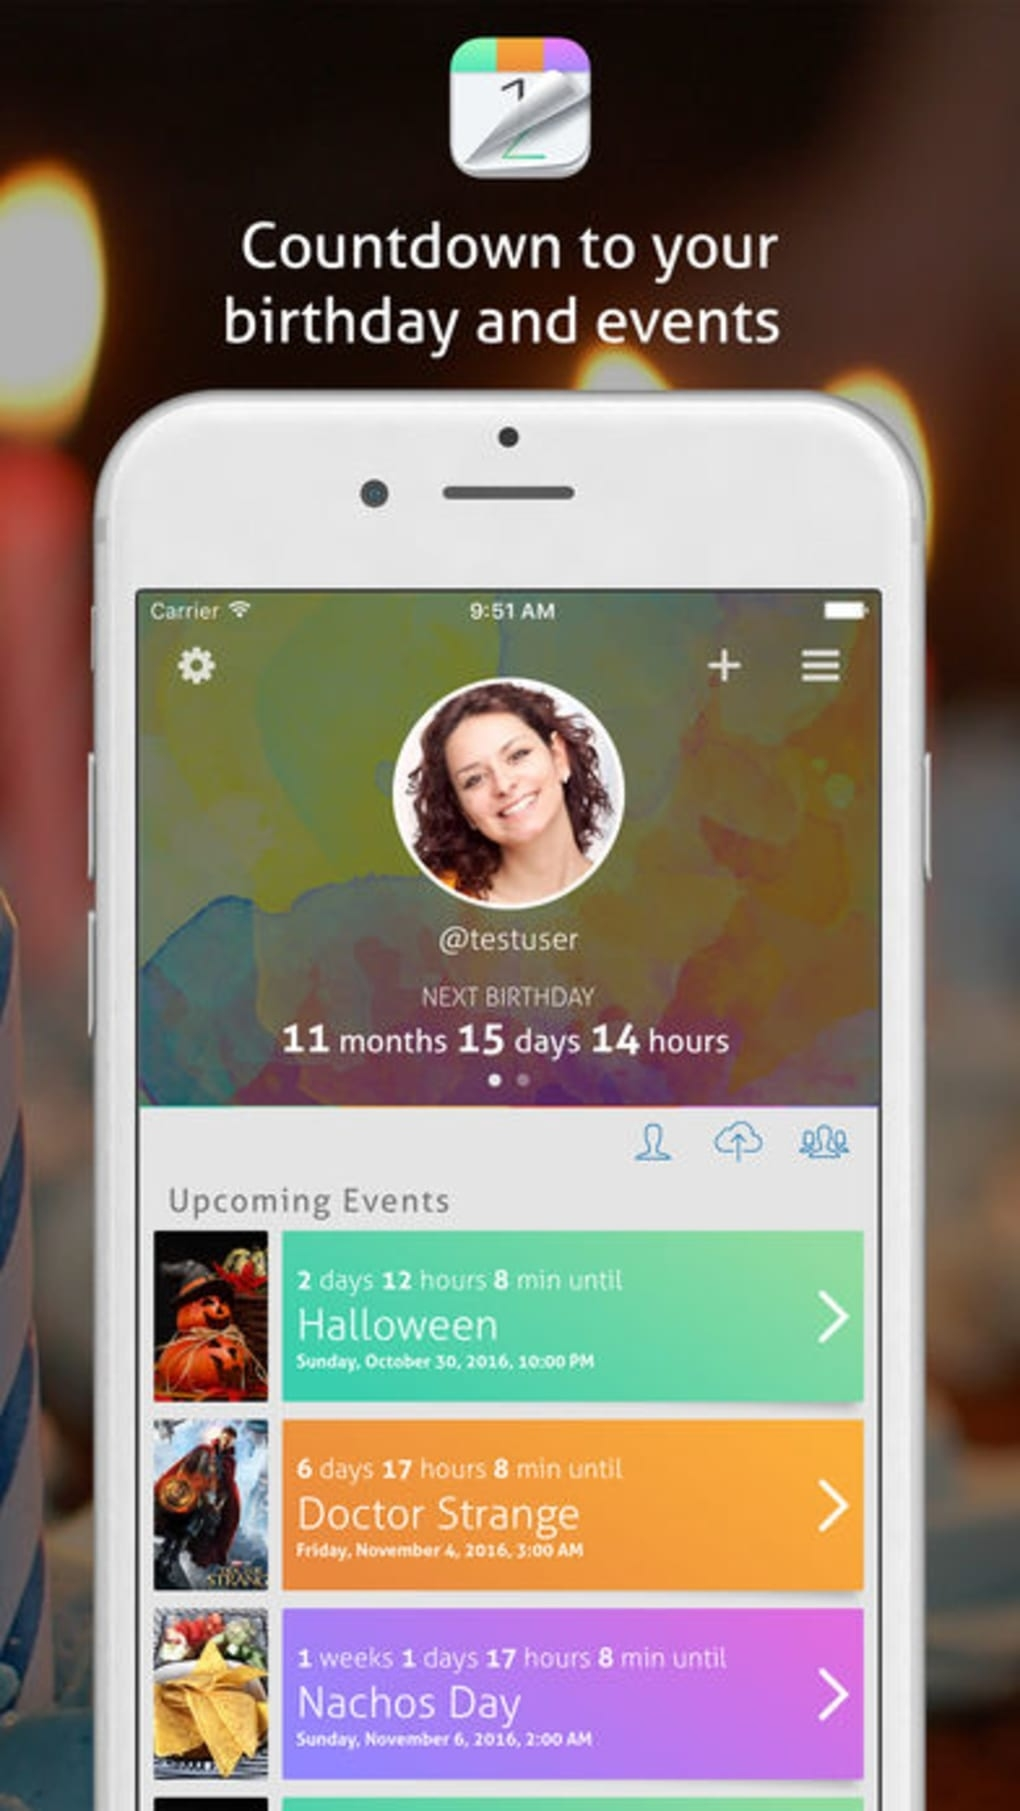 Countdown Calendar Events For Iphone - Download Countdown Calendar On Iphone 6